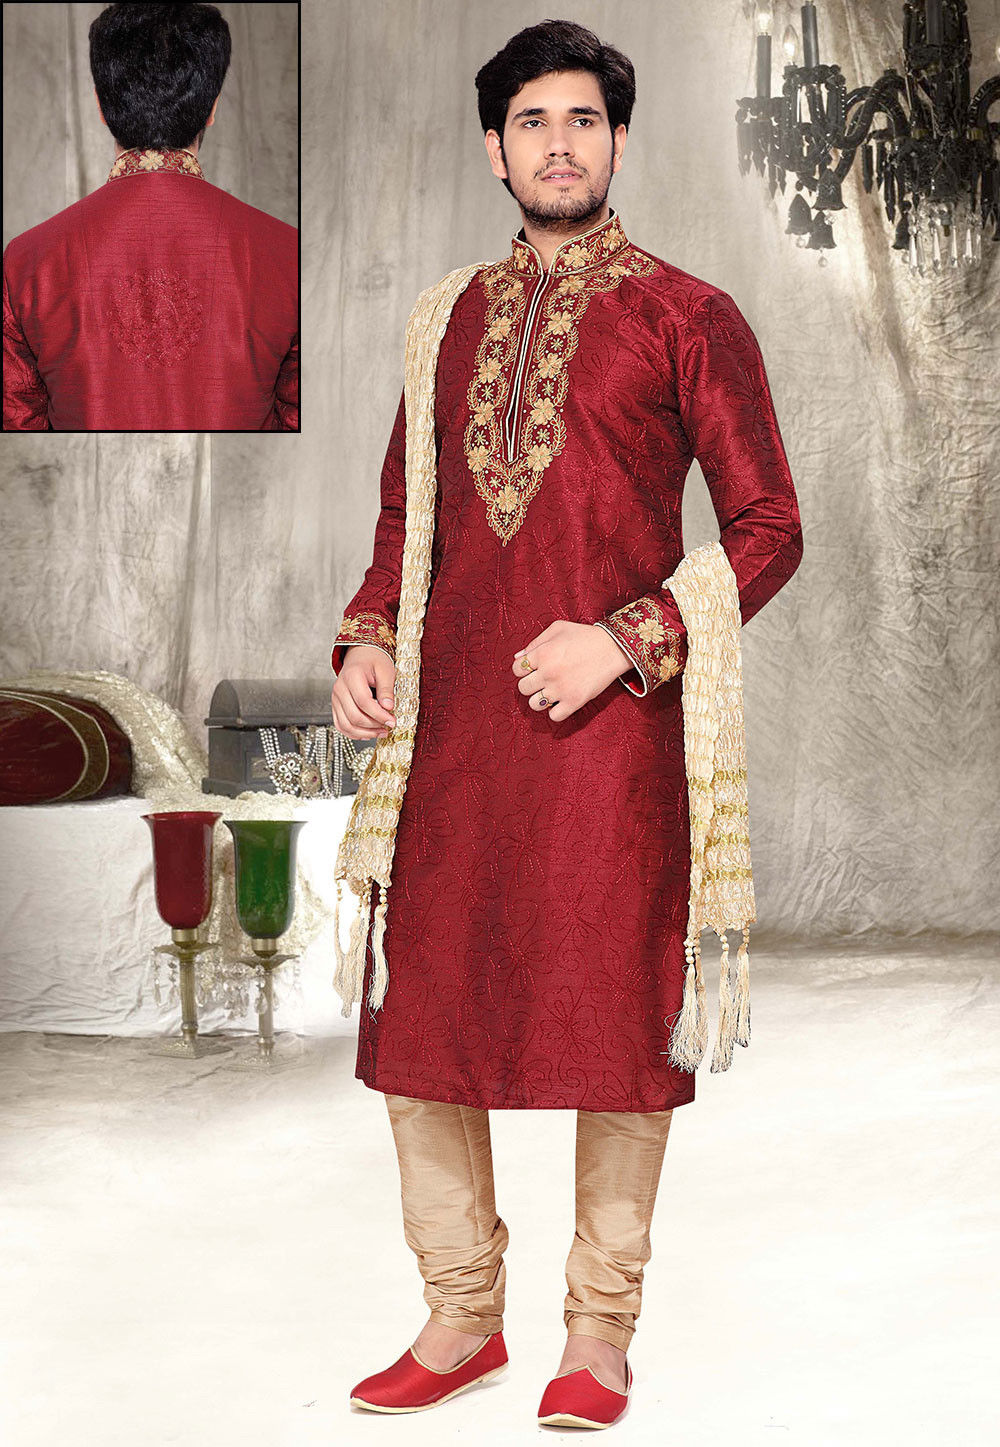 Embroidered Dupion Silk Kurta Churidar in Maroon